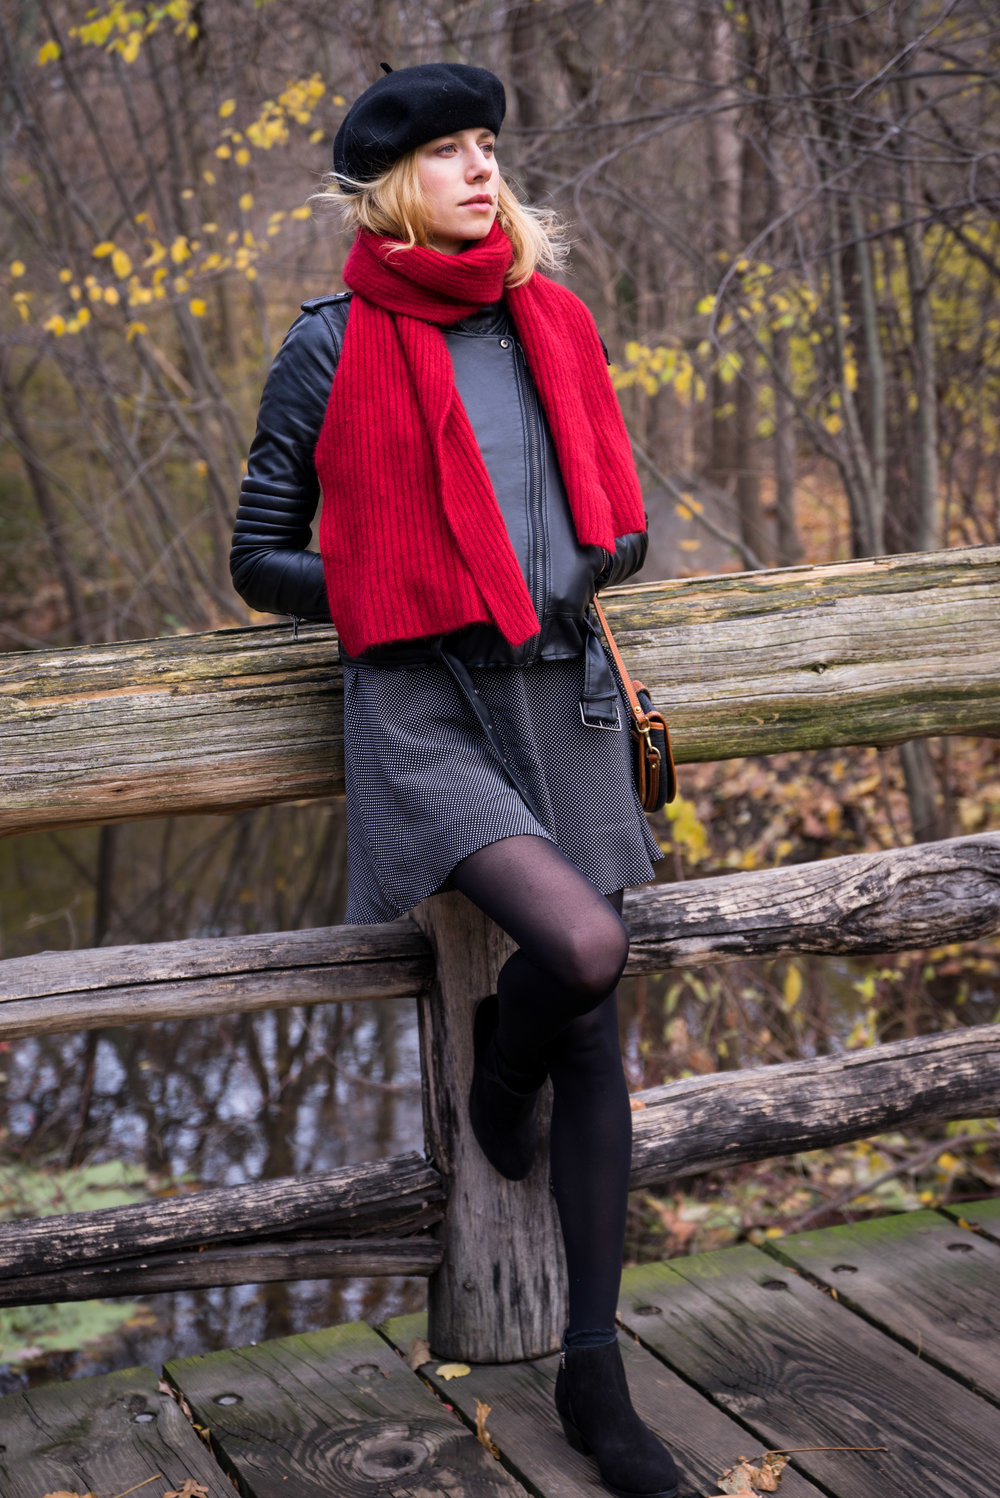 tori ratermanis fashion photograph in prospect park brooklyn new york